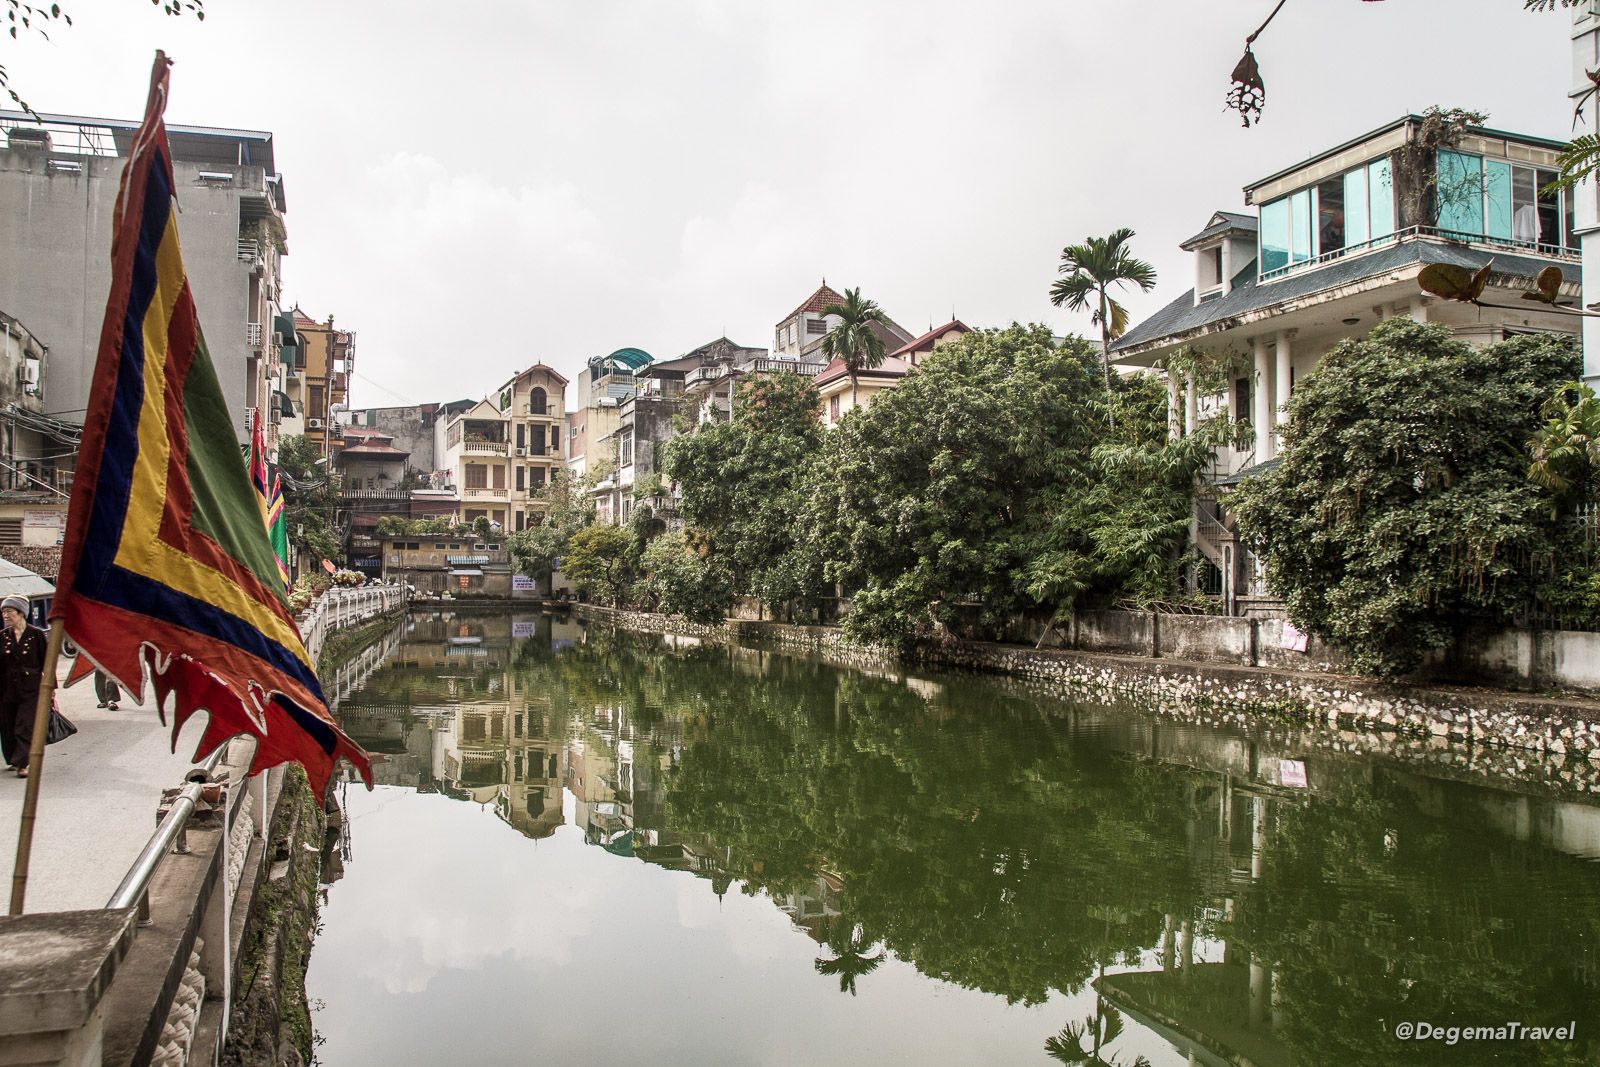 Lake in the middle of Hanoi, Vietnam